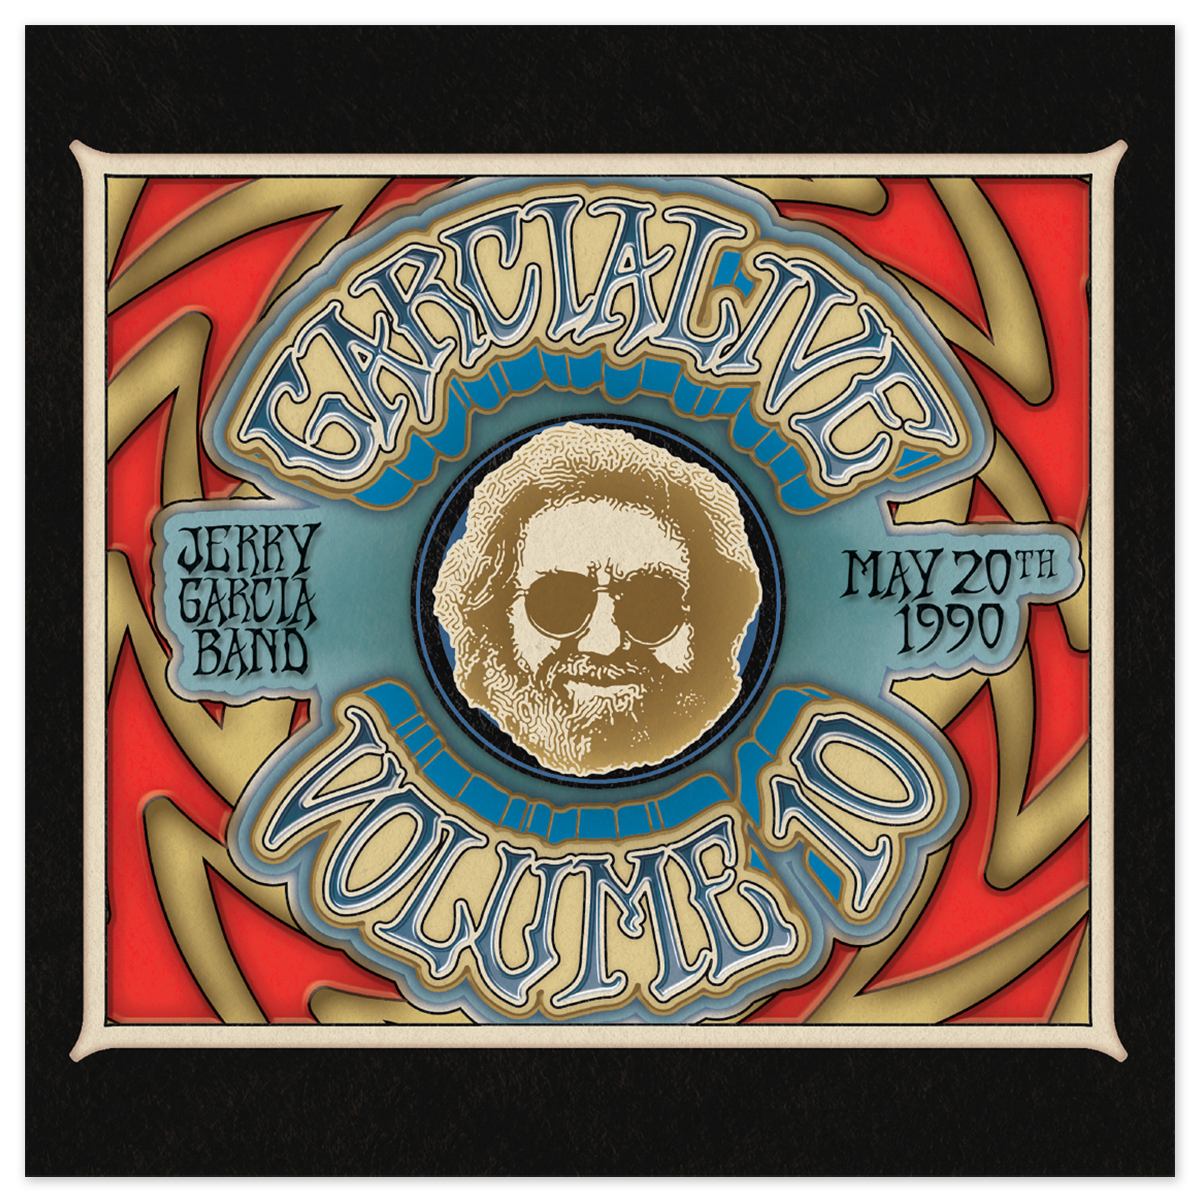 Jerry Garcia Band - GarciaLive Volume 10: 5/20/90 2-CD Set